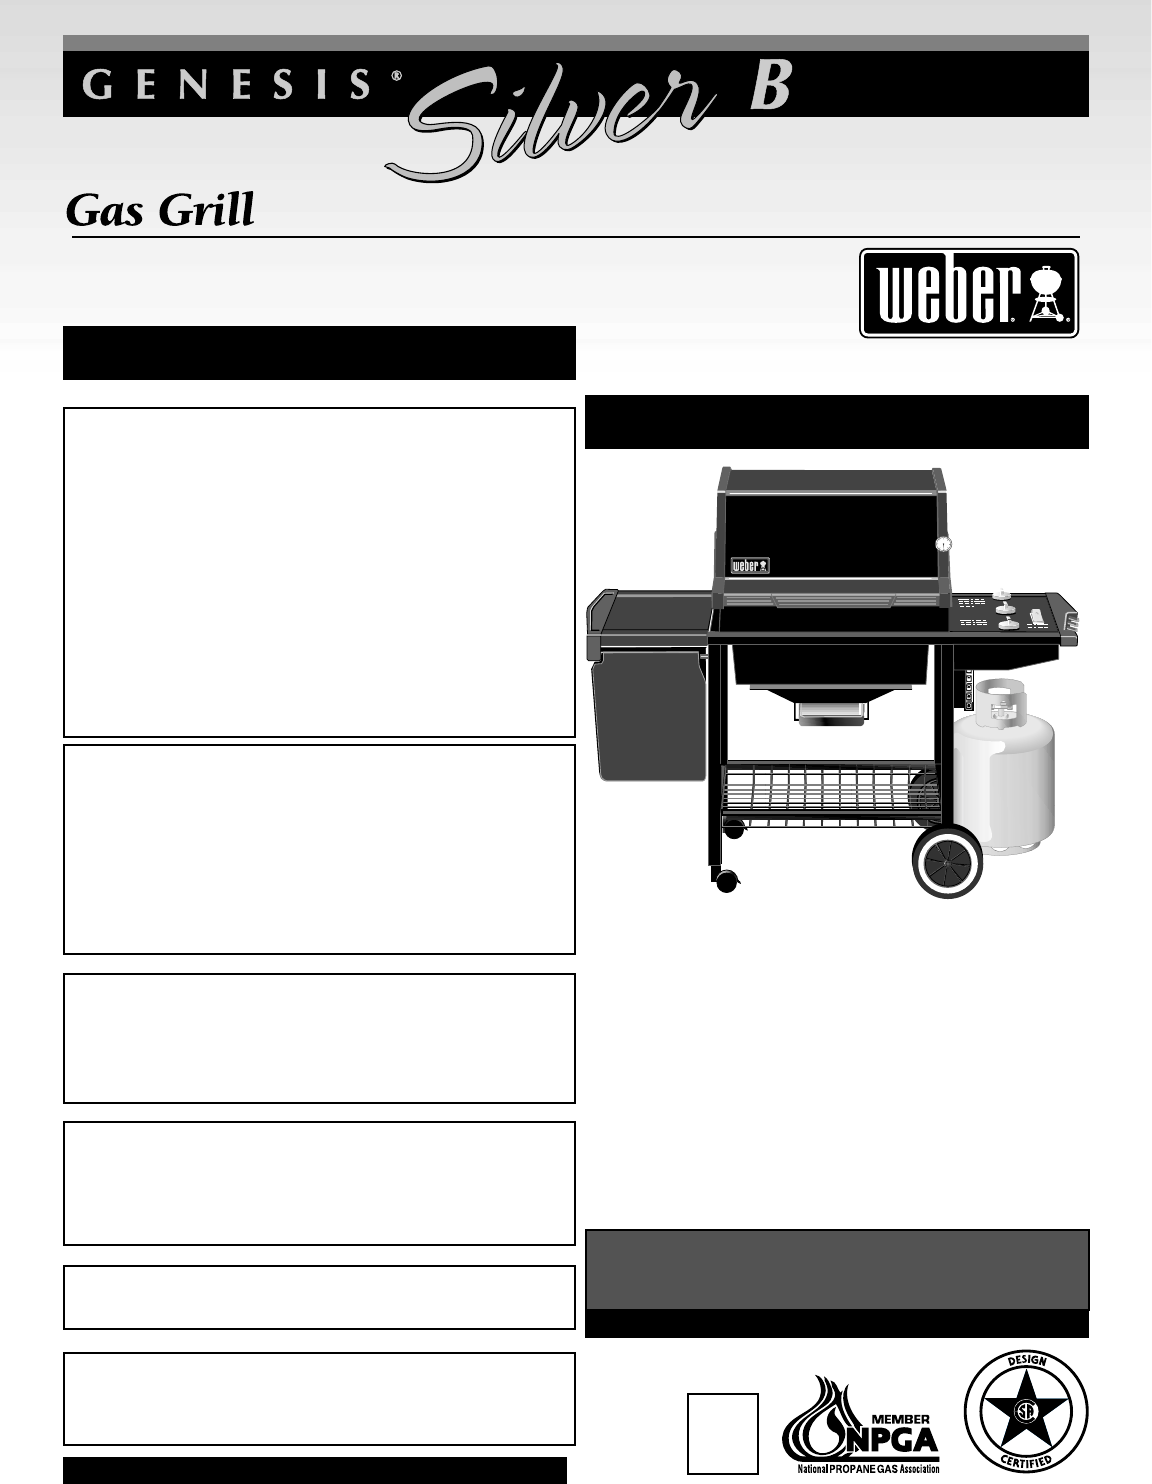 weber gas grill 55143 user guide. Black Bedroom Furniture Sets. Home Design Ideas